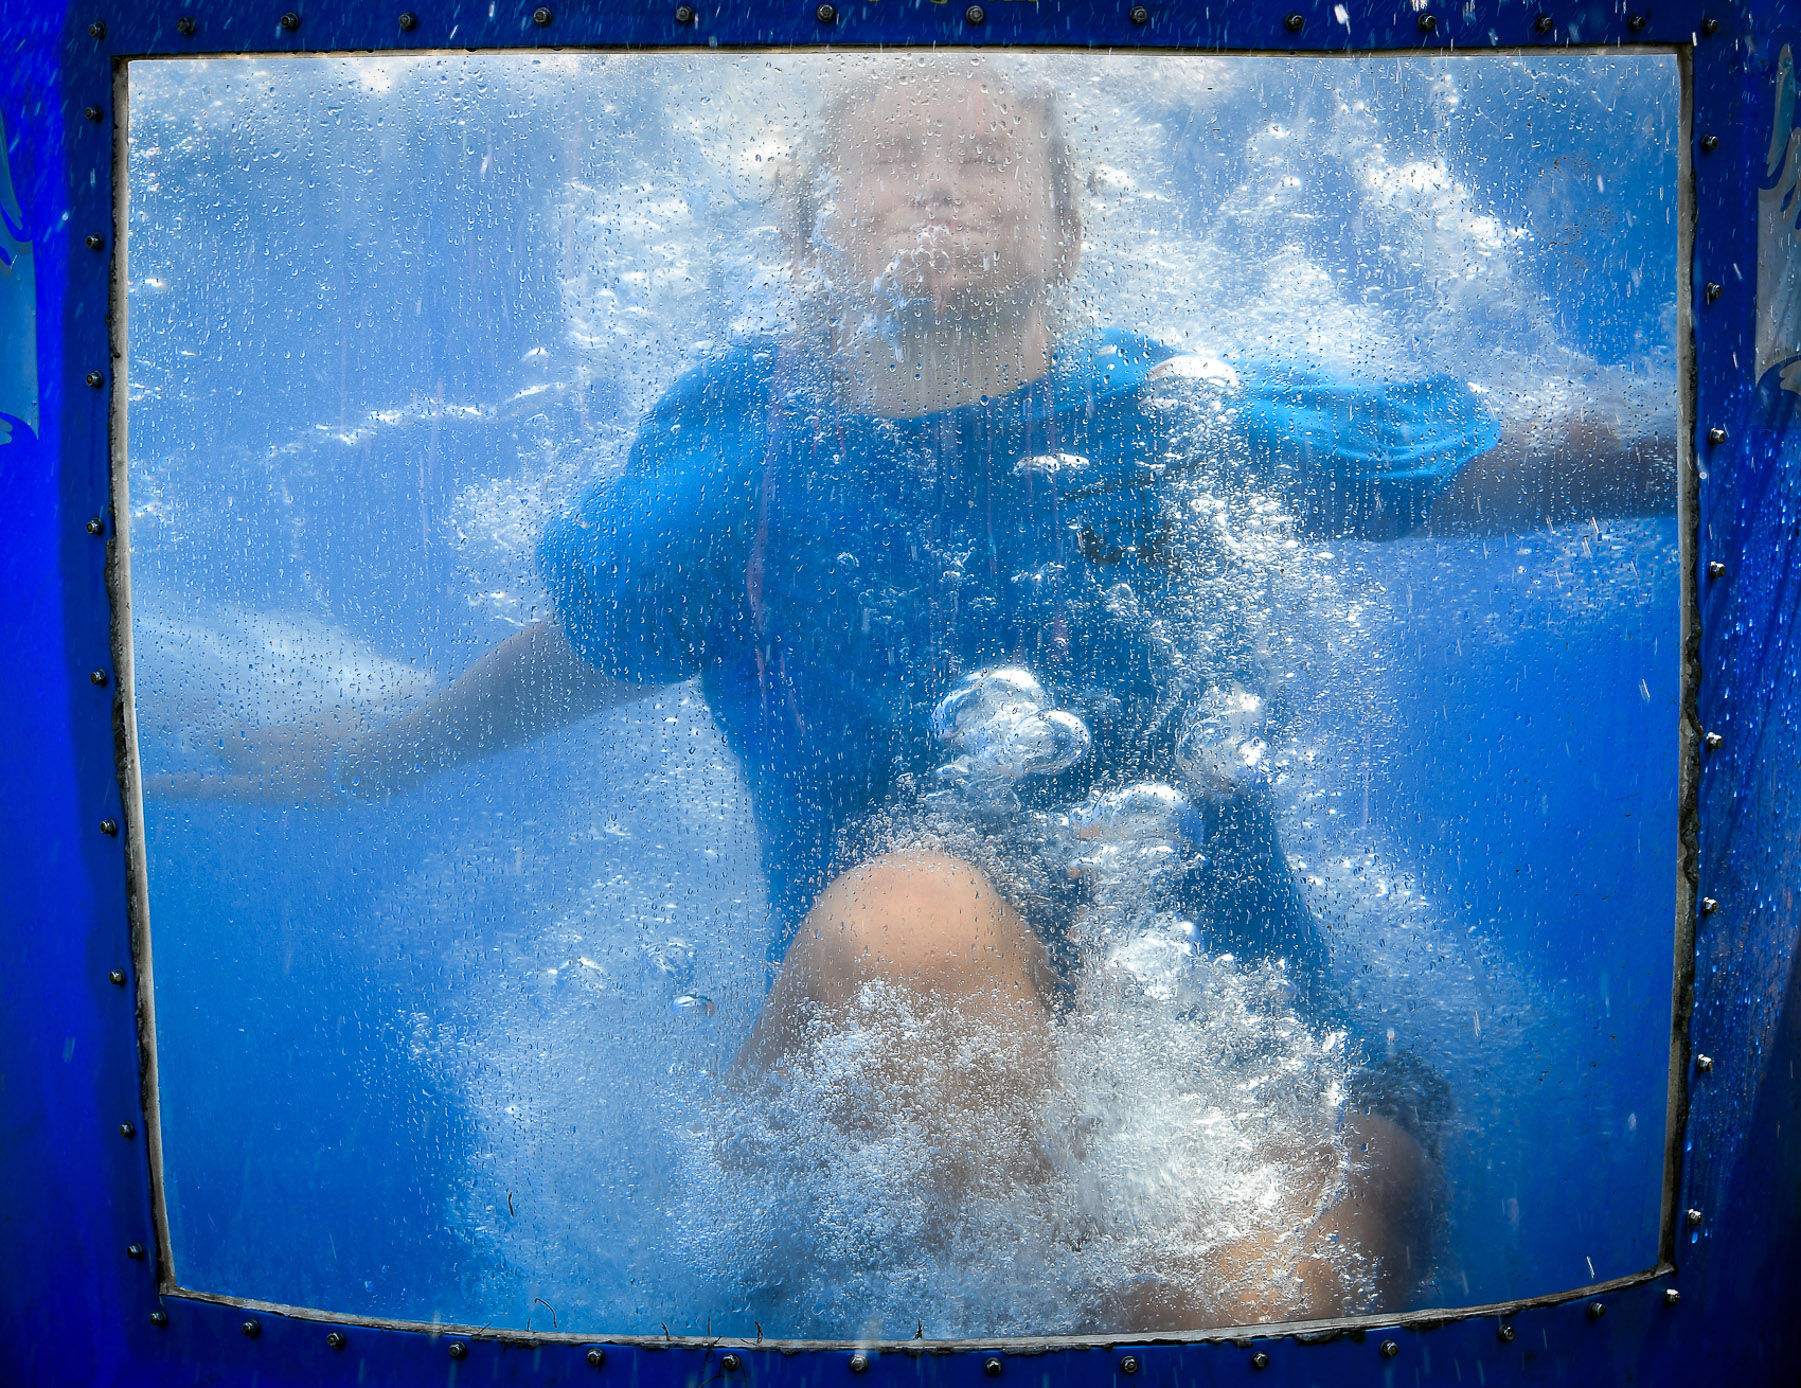 Danielle Dedeo, Adventure Camp councilor, gets soaked in the Dunk Tank during the Kids Carnival at Lynch Park, Friday, Aug. 4, 2017. [Wicked Local Staff Photo / David Sokol]